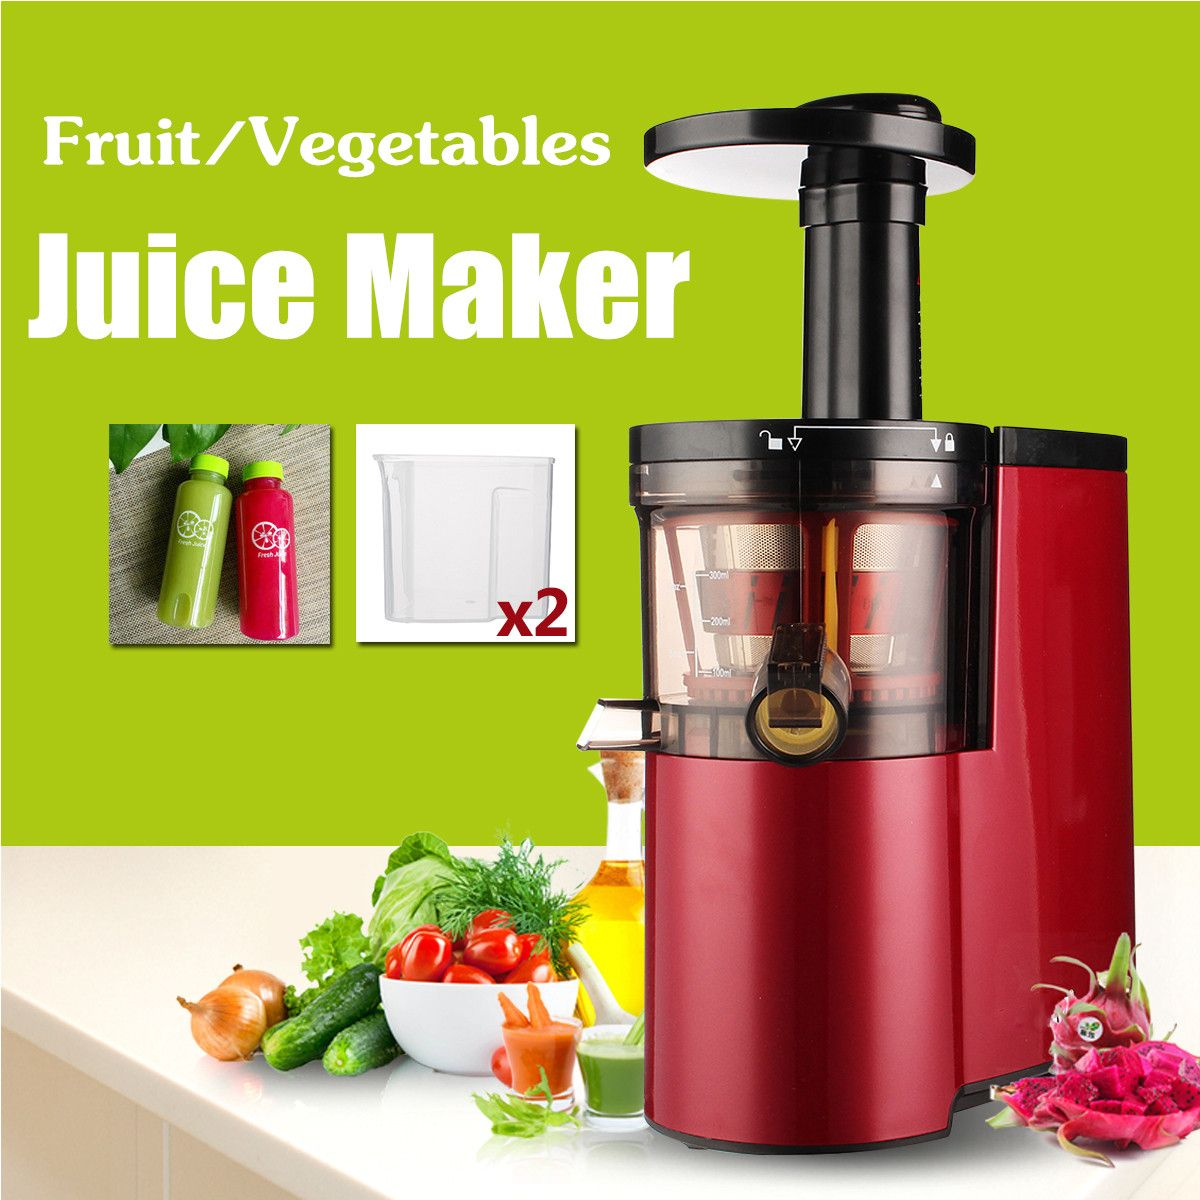 220V Electric Slow Juicer Fruits Vegetables Low Speed Juice Maker Extractor 150W Self-cleaning Ultra-quiet Red Squeezing